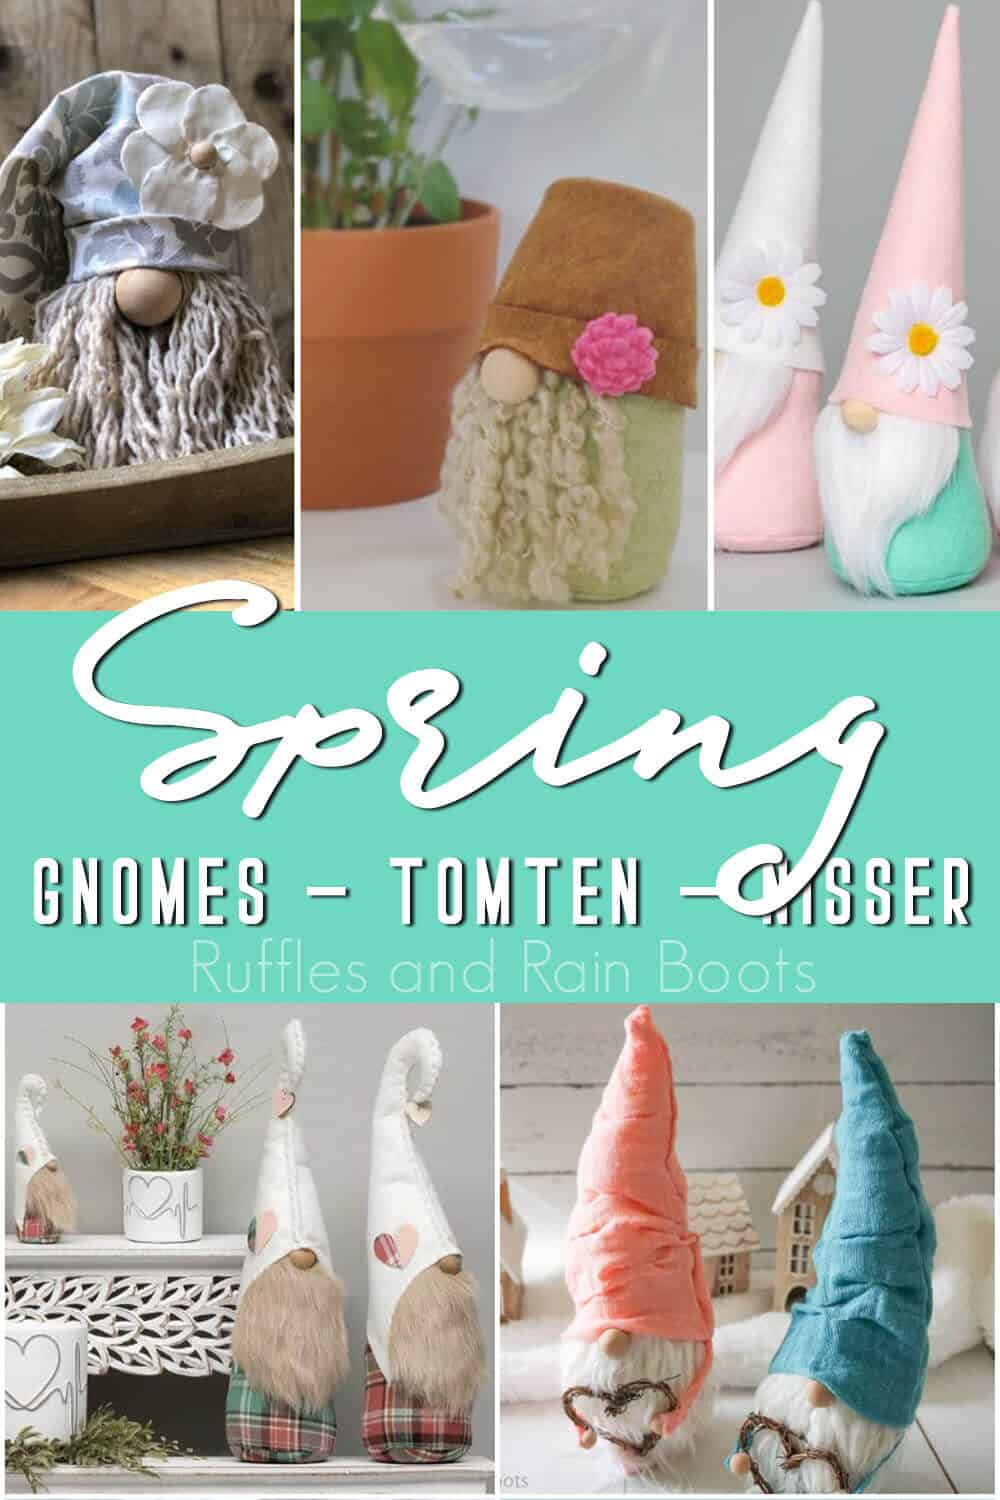 photo collage of farmhouse gnomes for spring with text which reads spring gnomes tomten nisser